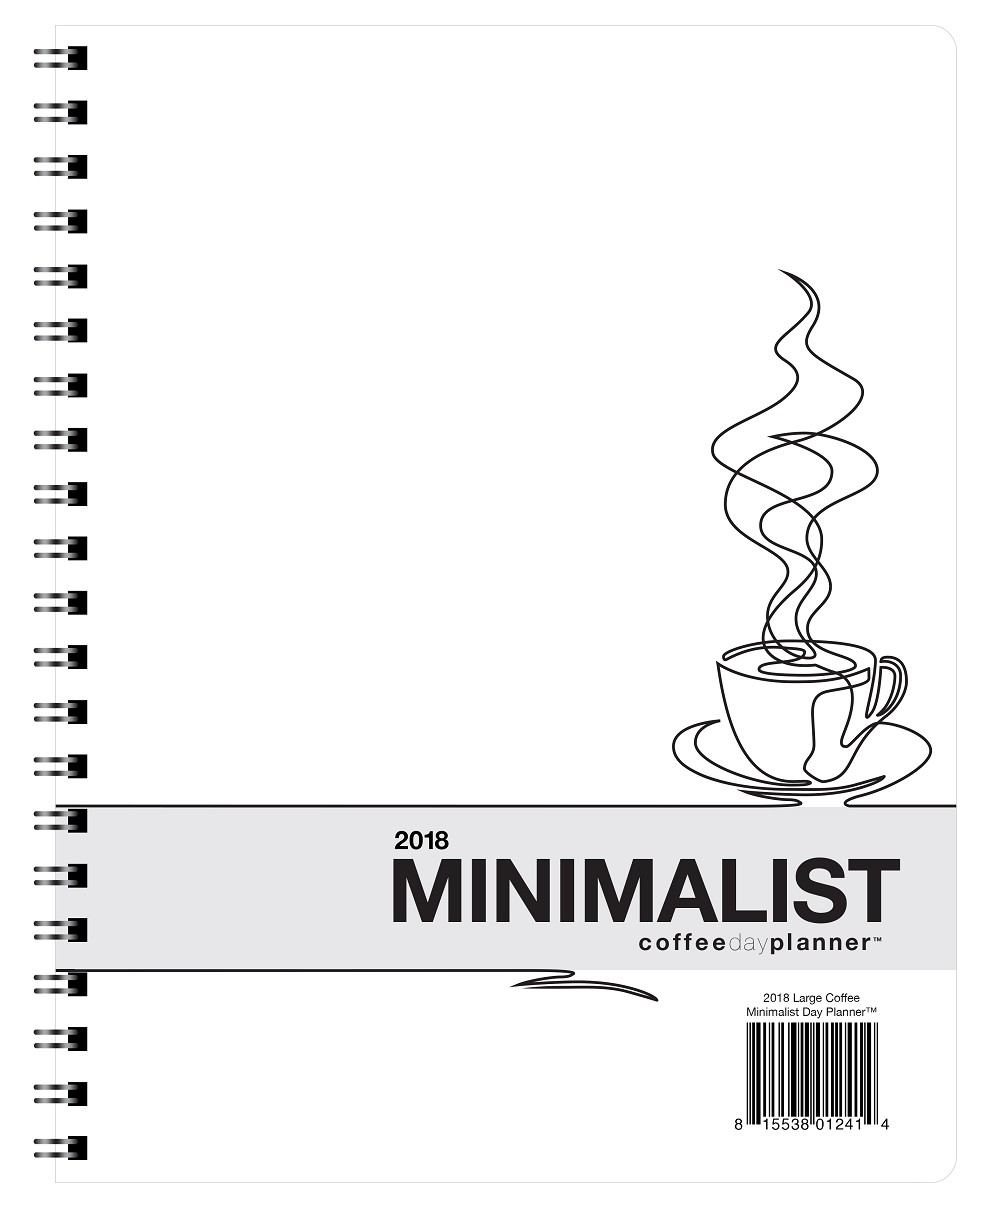 2018 Coffee Minimalist Day Planner